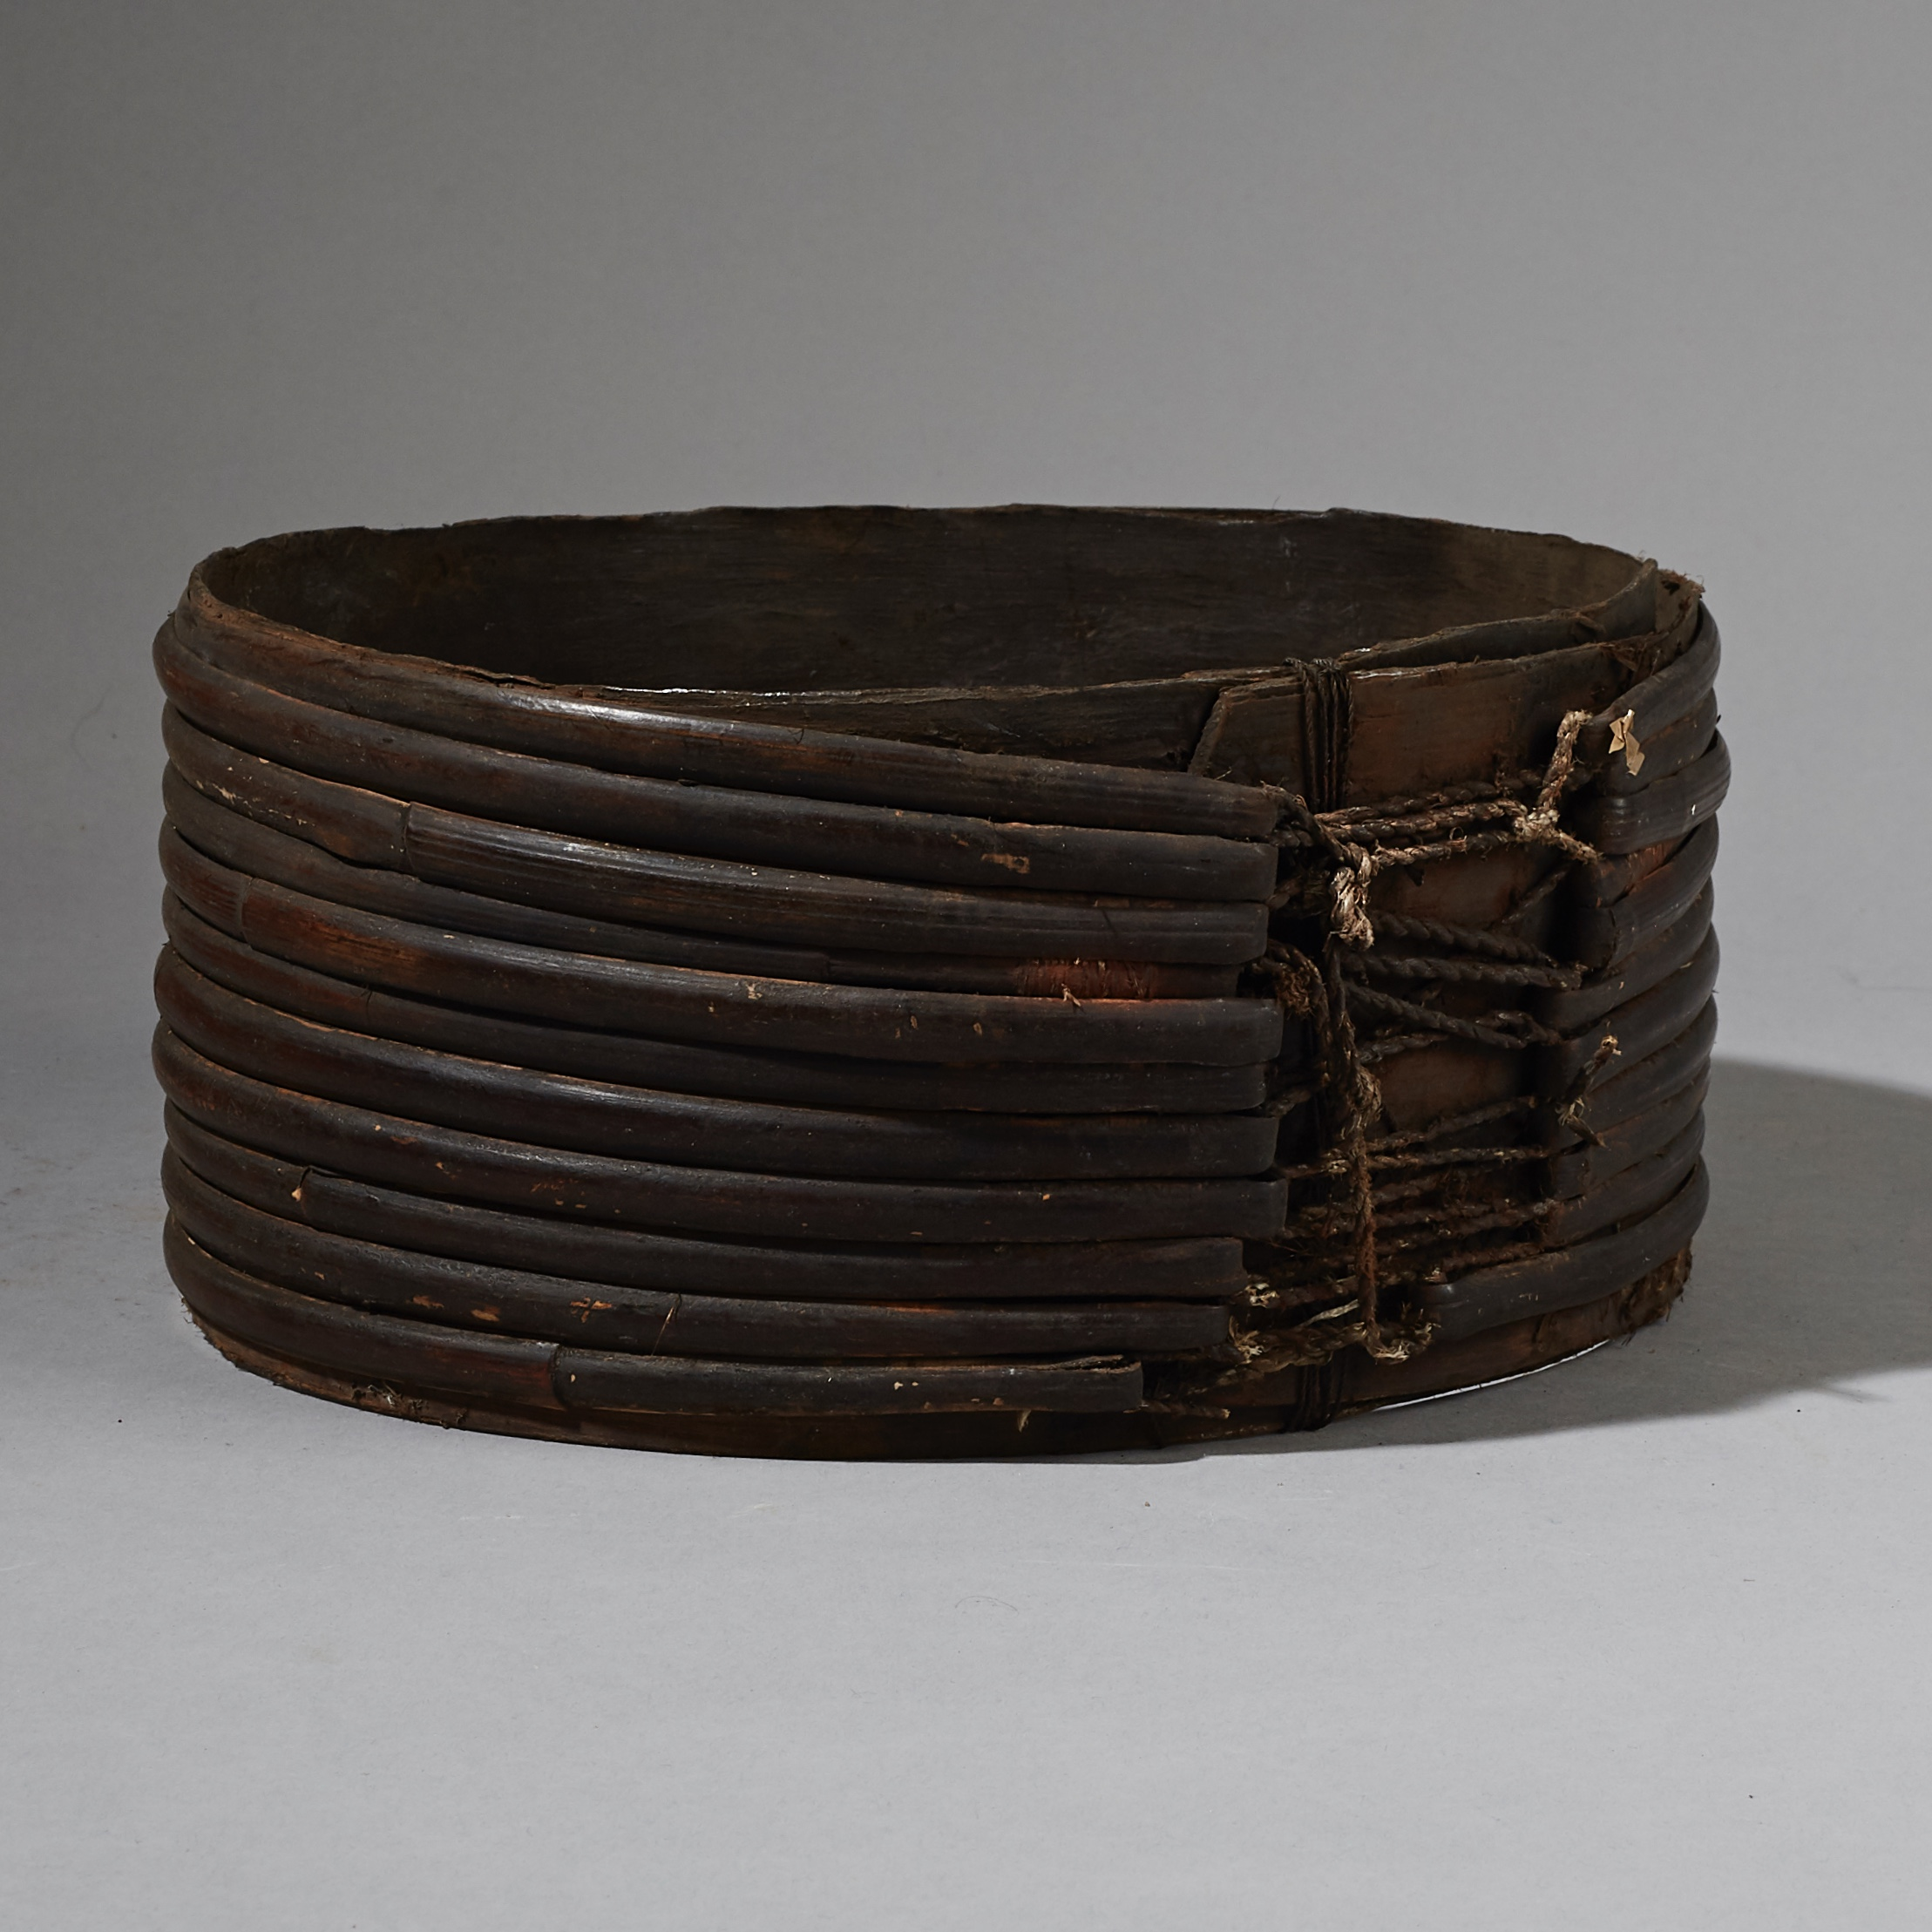 AN OLD BAMBOO BELT FROM PAPUA NEW GUINEA ( No 2655 )